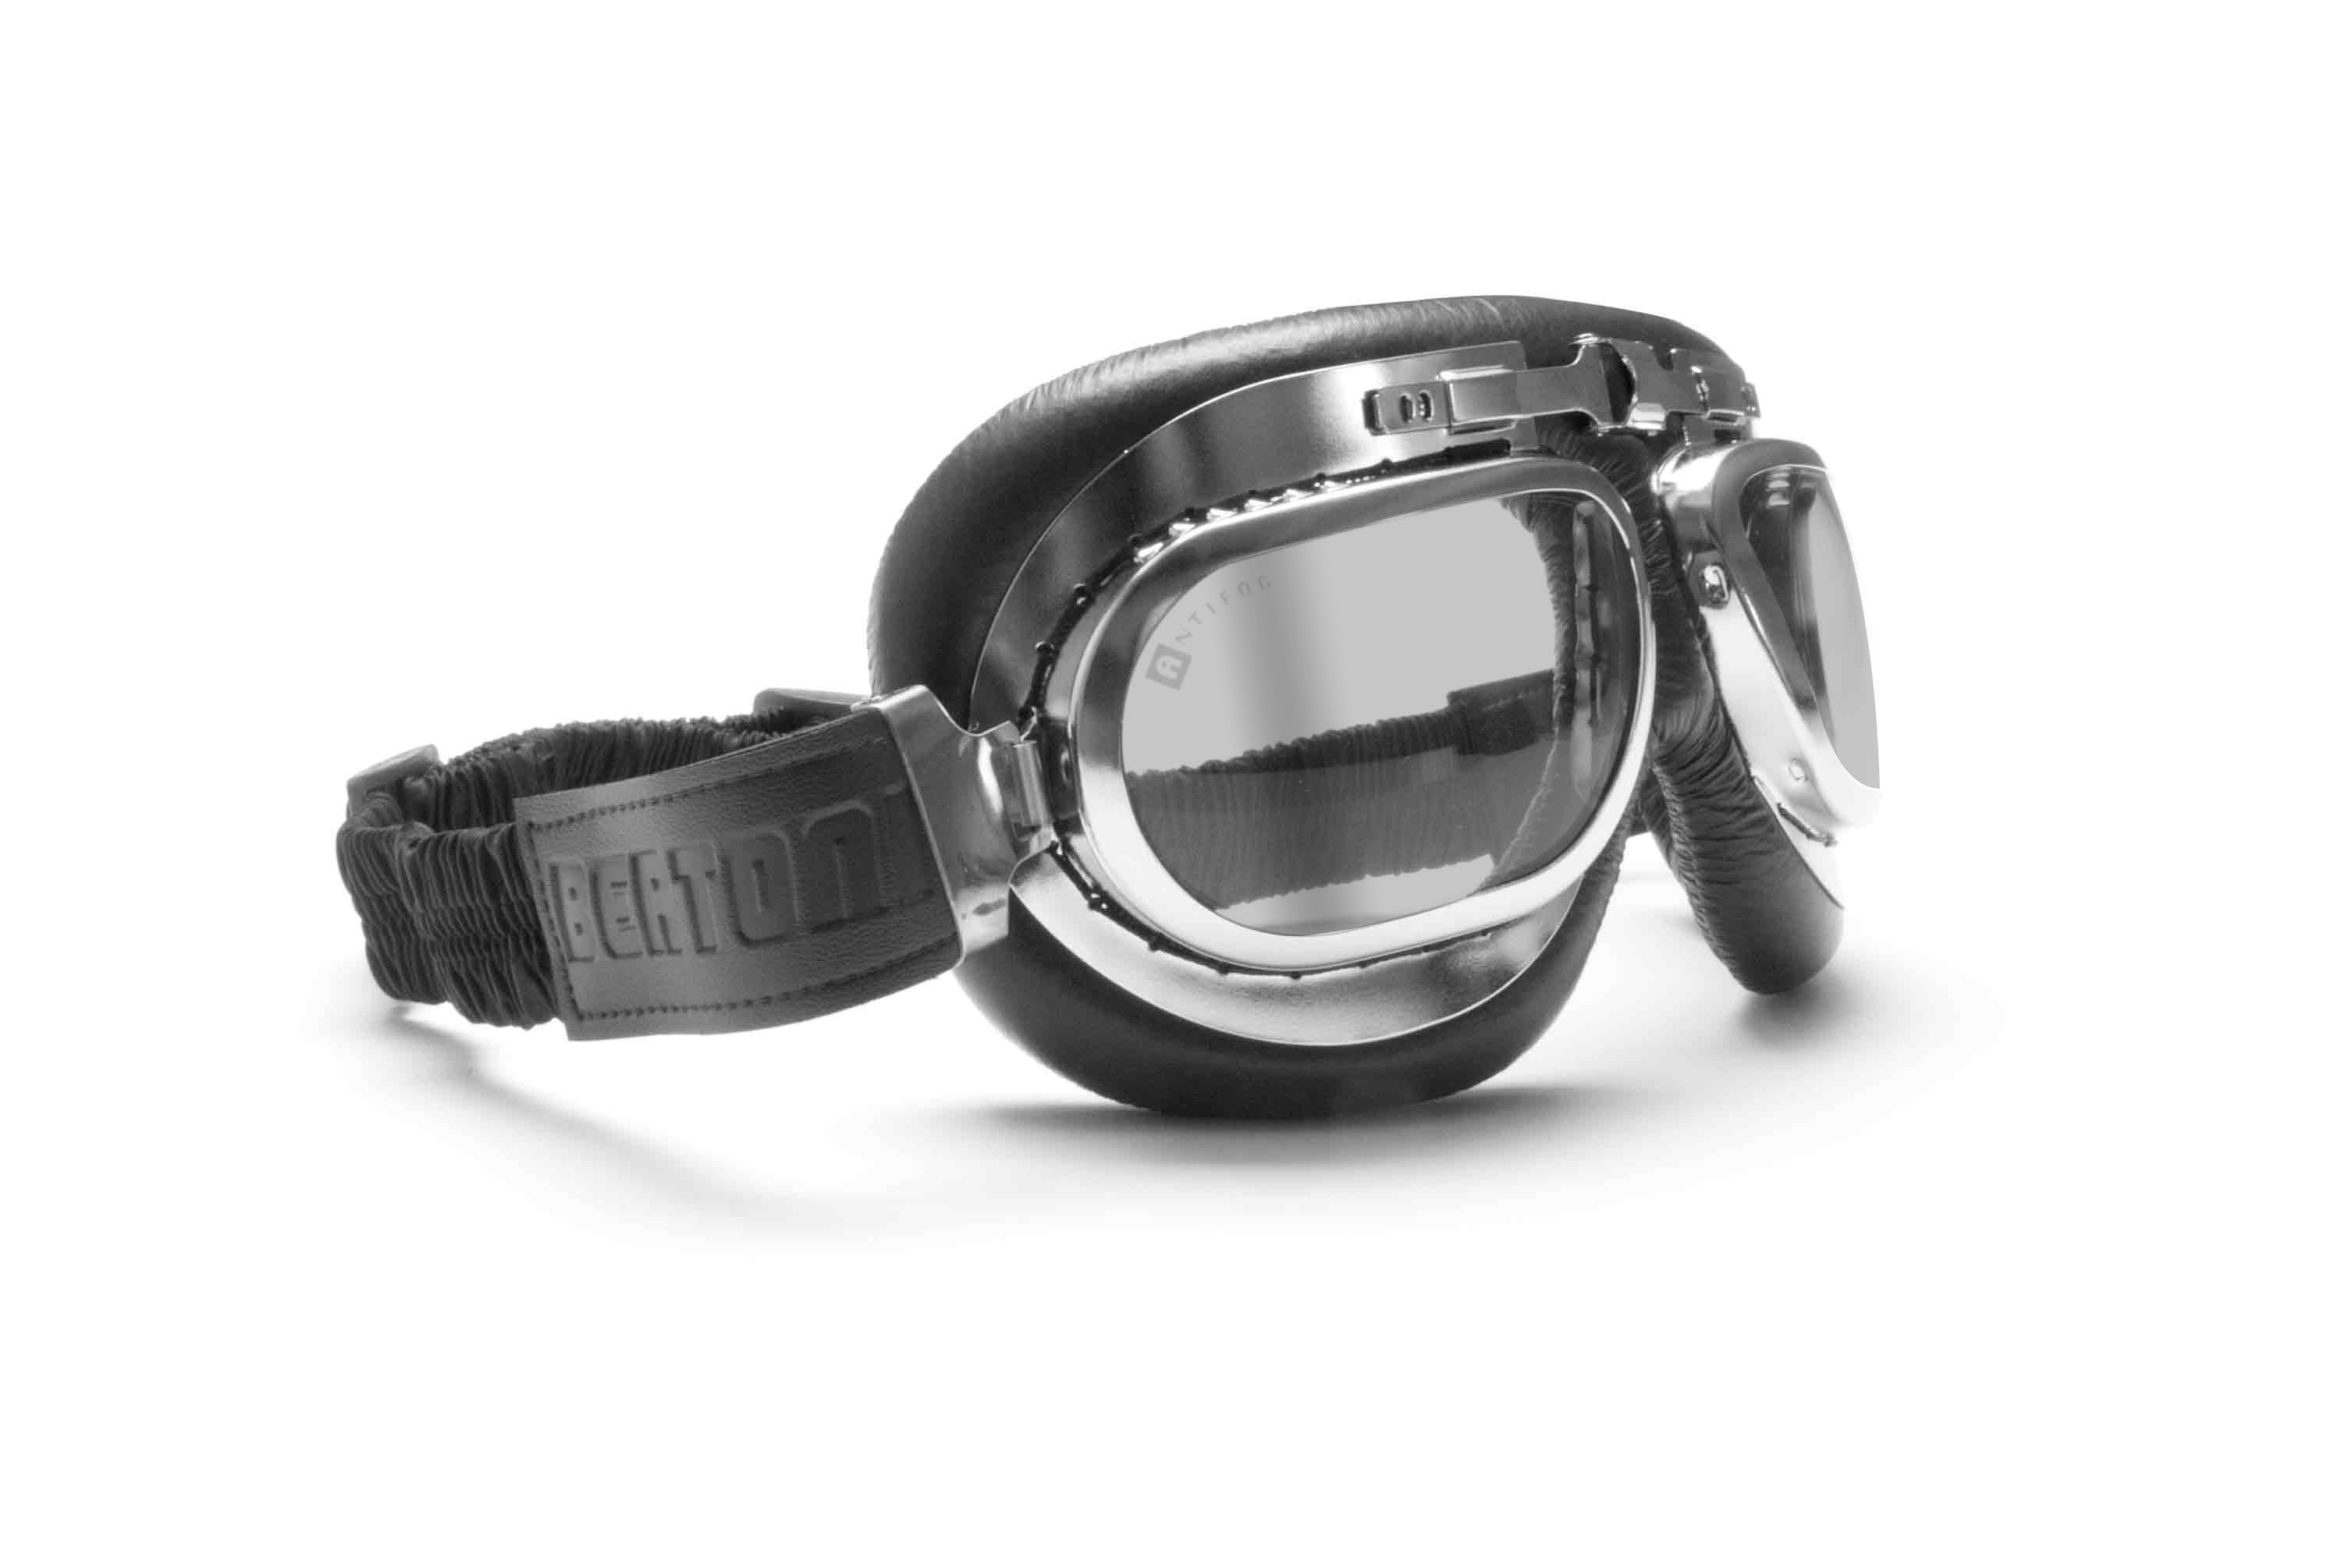 Motorcycle Goggles Vintage Style with Antifog and Anticrash Lenses - Light Smoked Clear Antifog Lens - Steel Frame - by Bertoni Italy - AF191CRS